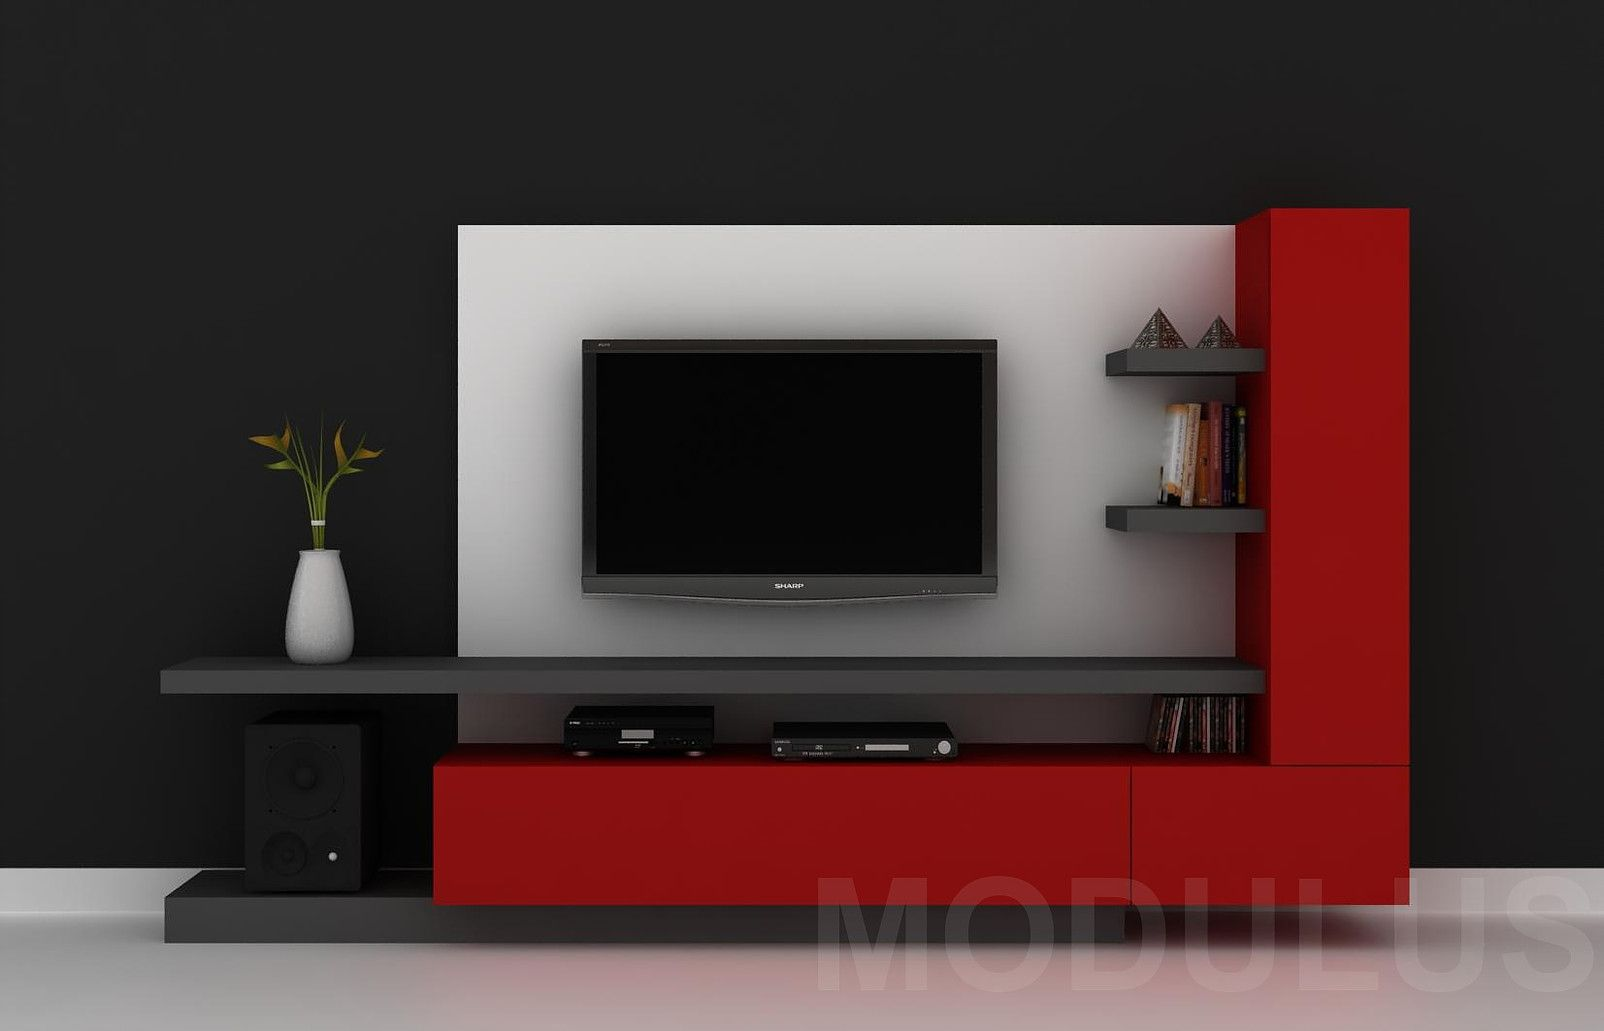 Modulares para living tv lcd led wall unit muebles for Muebles modulares modernos